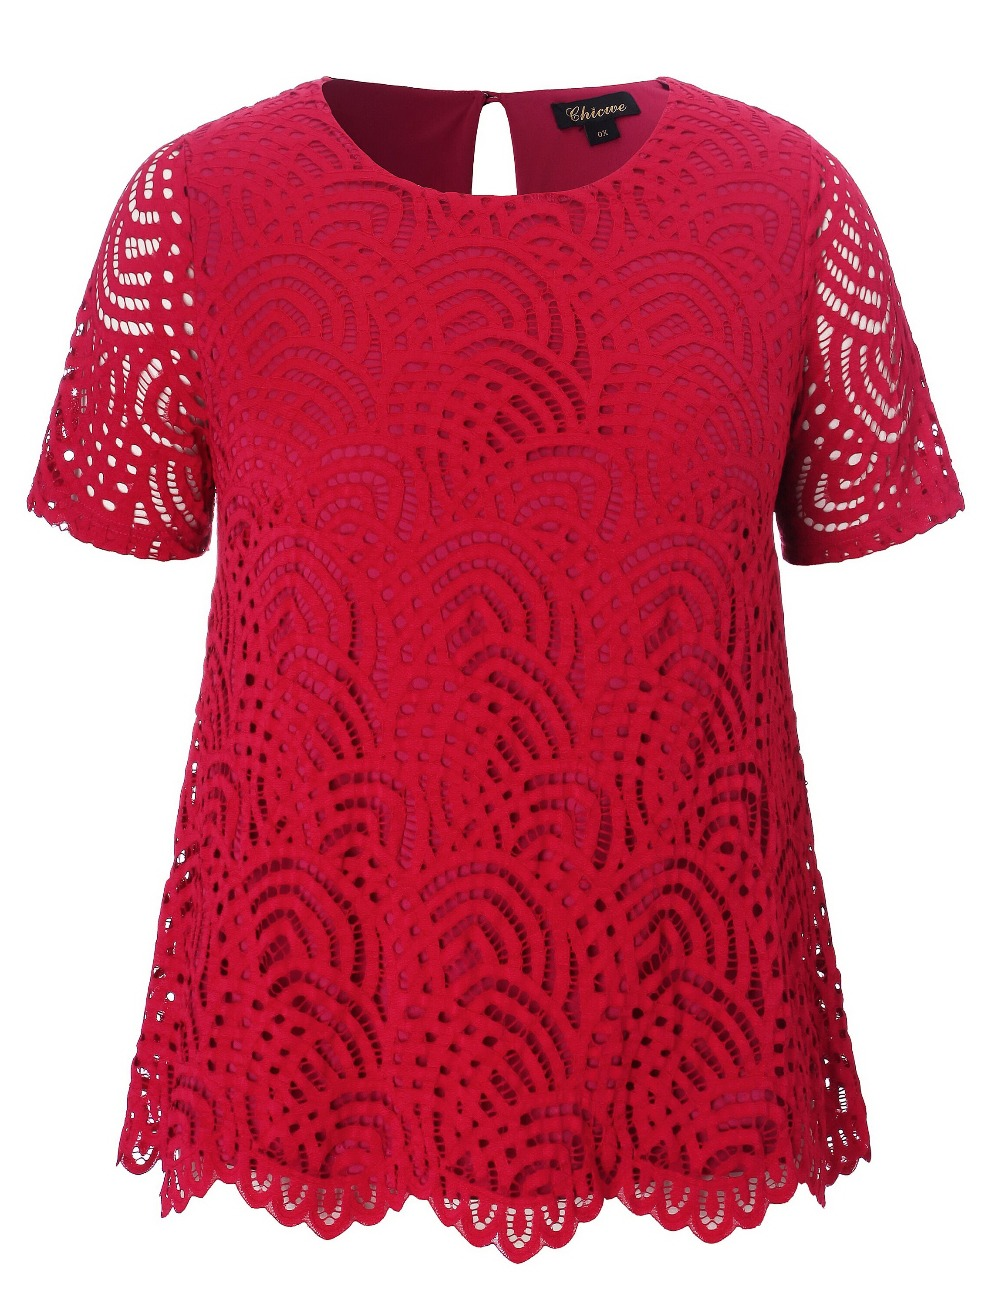 2018 Chicwe New Women s Plus Size Smart Scalloped Lace Top Tunic Blouse Large  Size Big Size 1X 4X-in Blouses   Shirts from Women s Clothing on ... 4500dce7fd2d